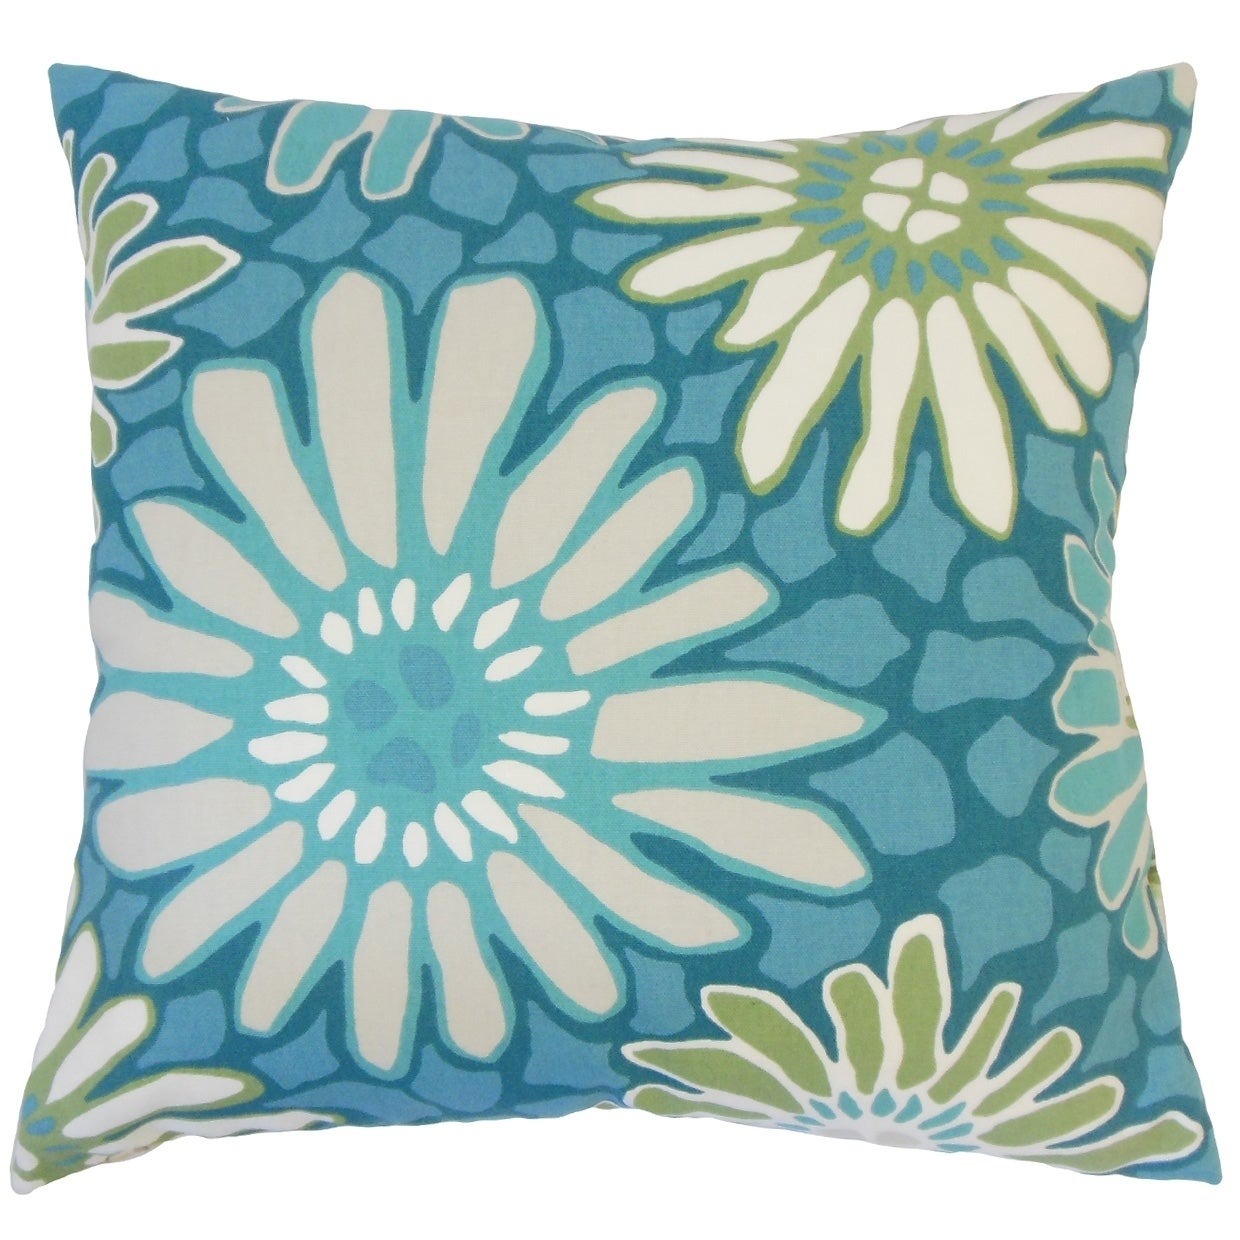 Sabeen Floral Down Filled Throw Pillow in Turquoise (Rectangle - 12 x 18)